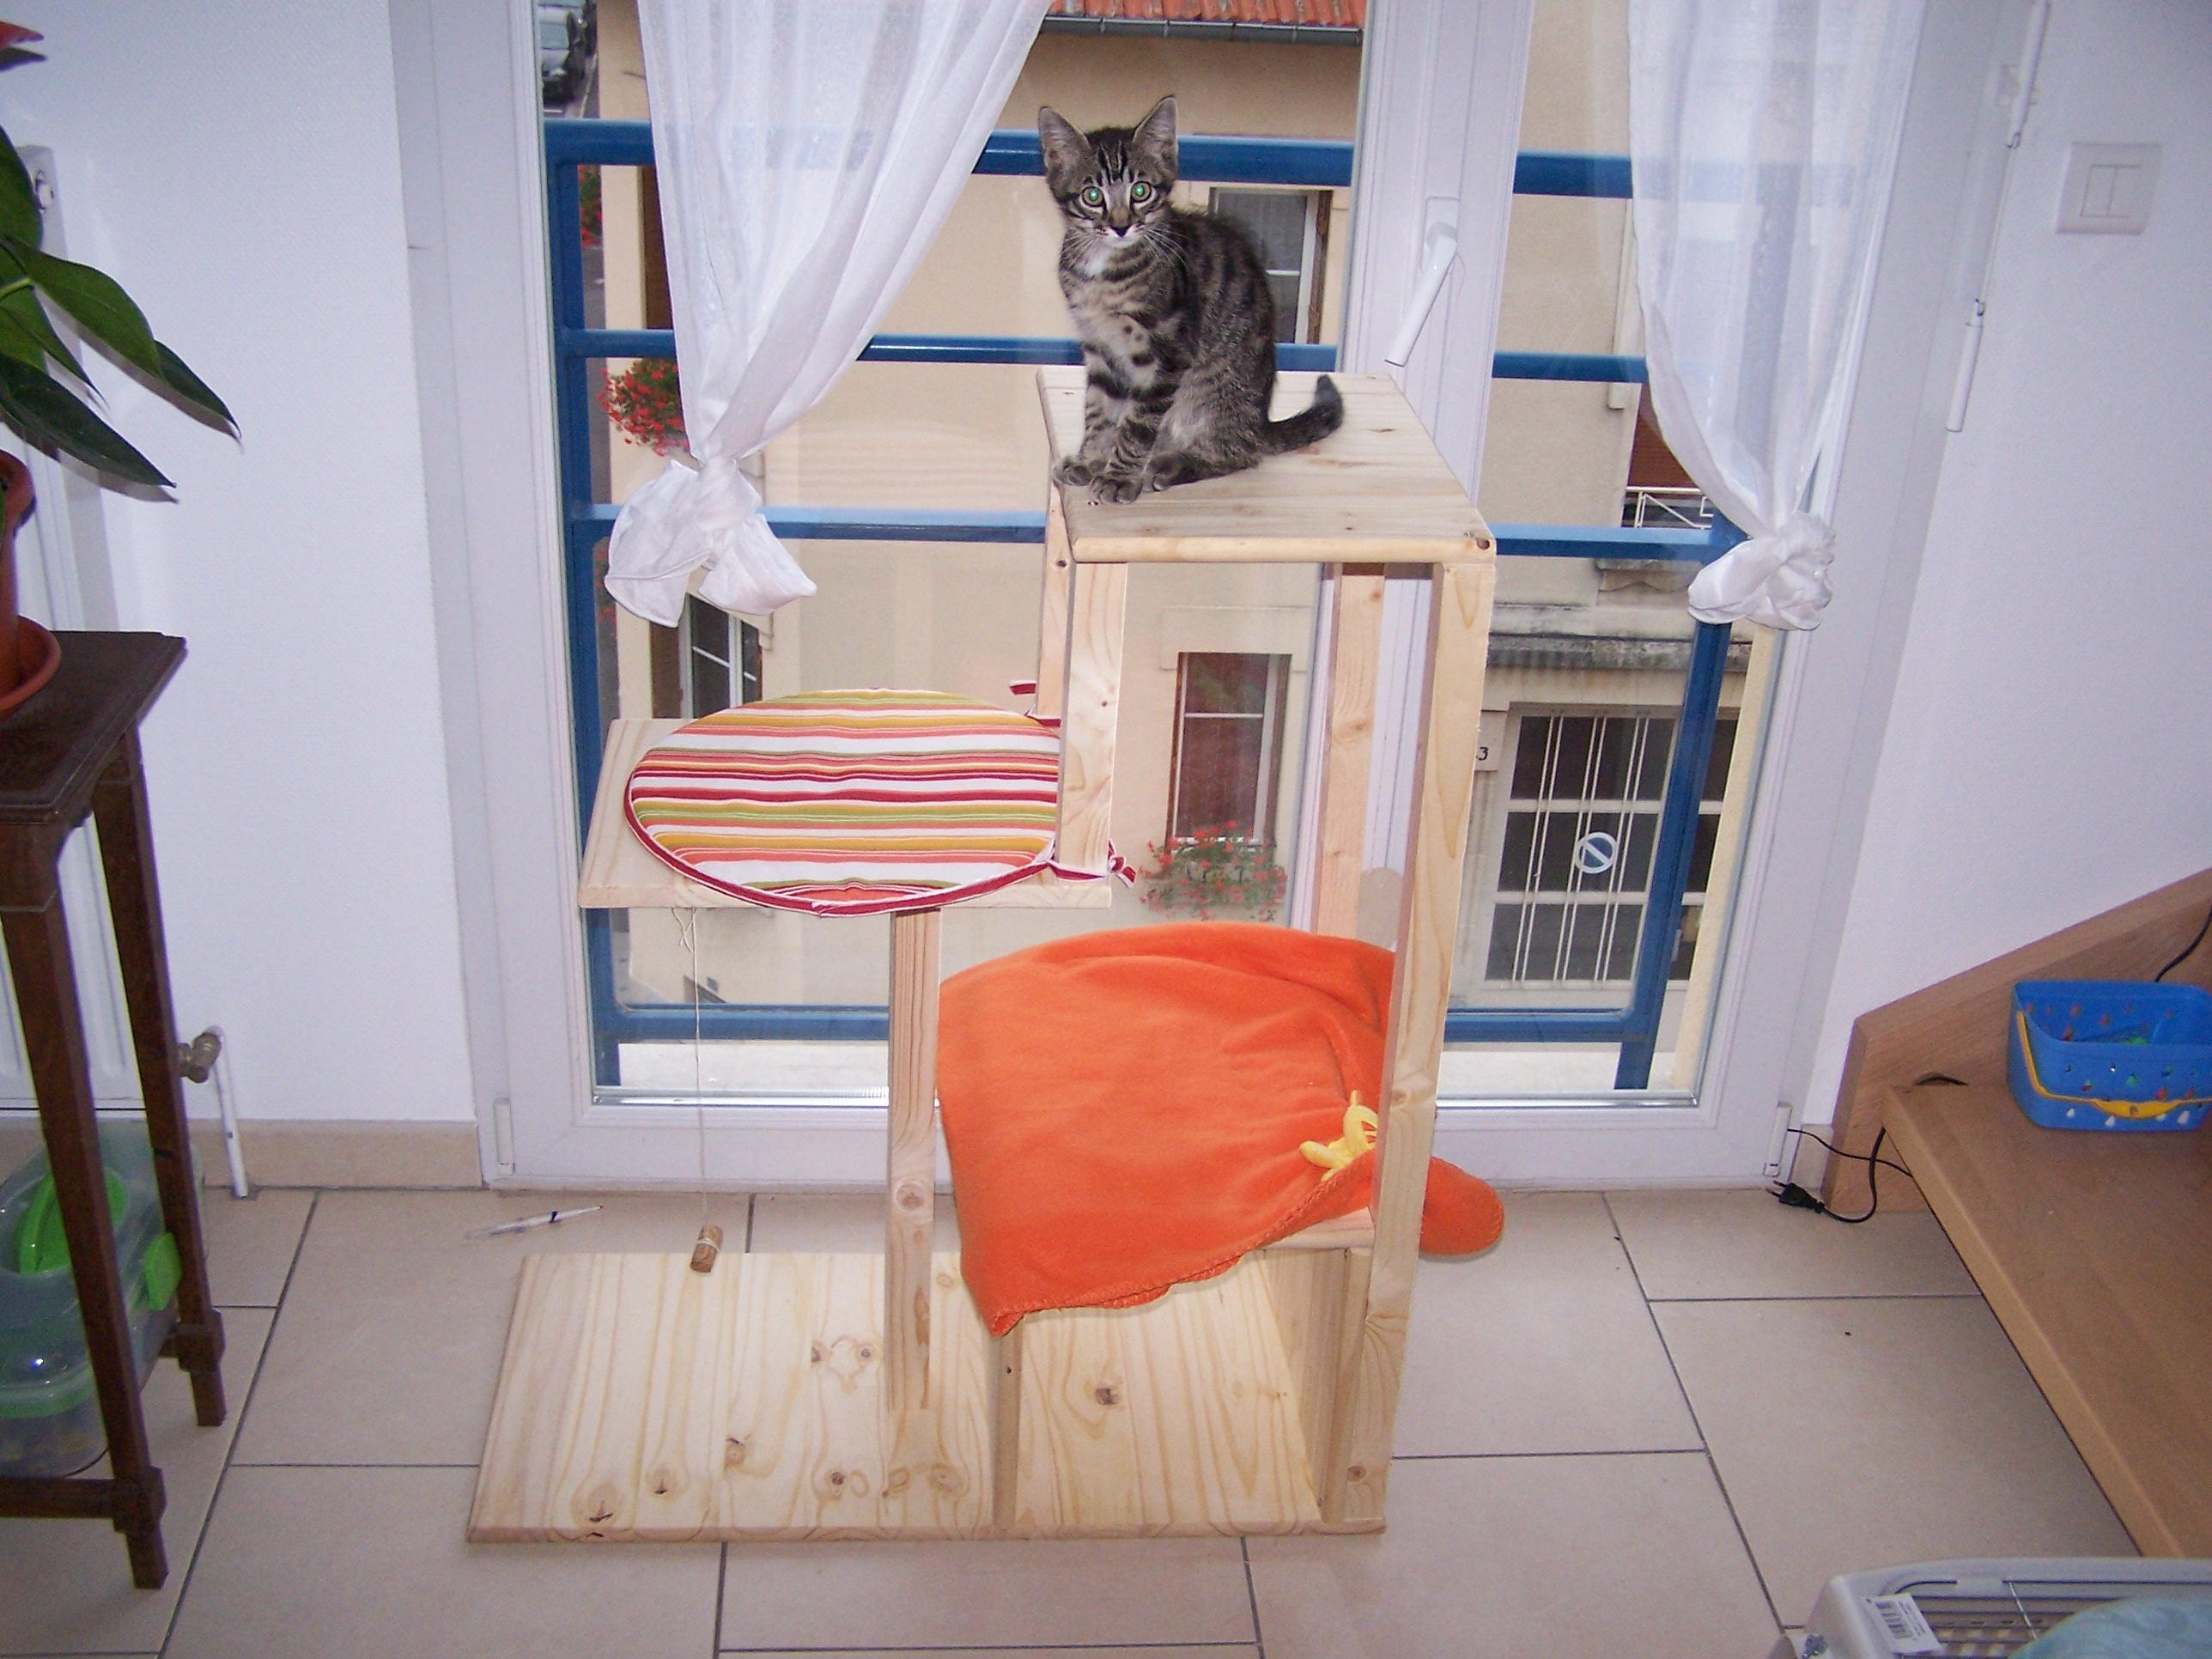 merlin sur son arbre arbre chat merlin sophieda photos club doctissimo. Black Bedroom Furniture Sets. Home Design Ideas